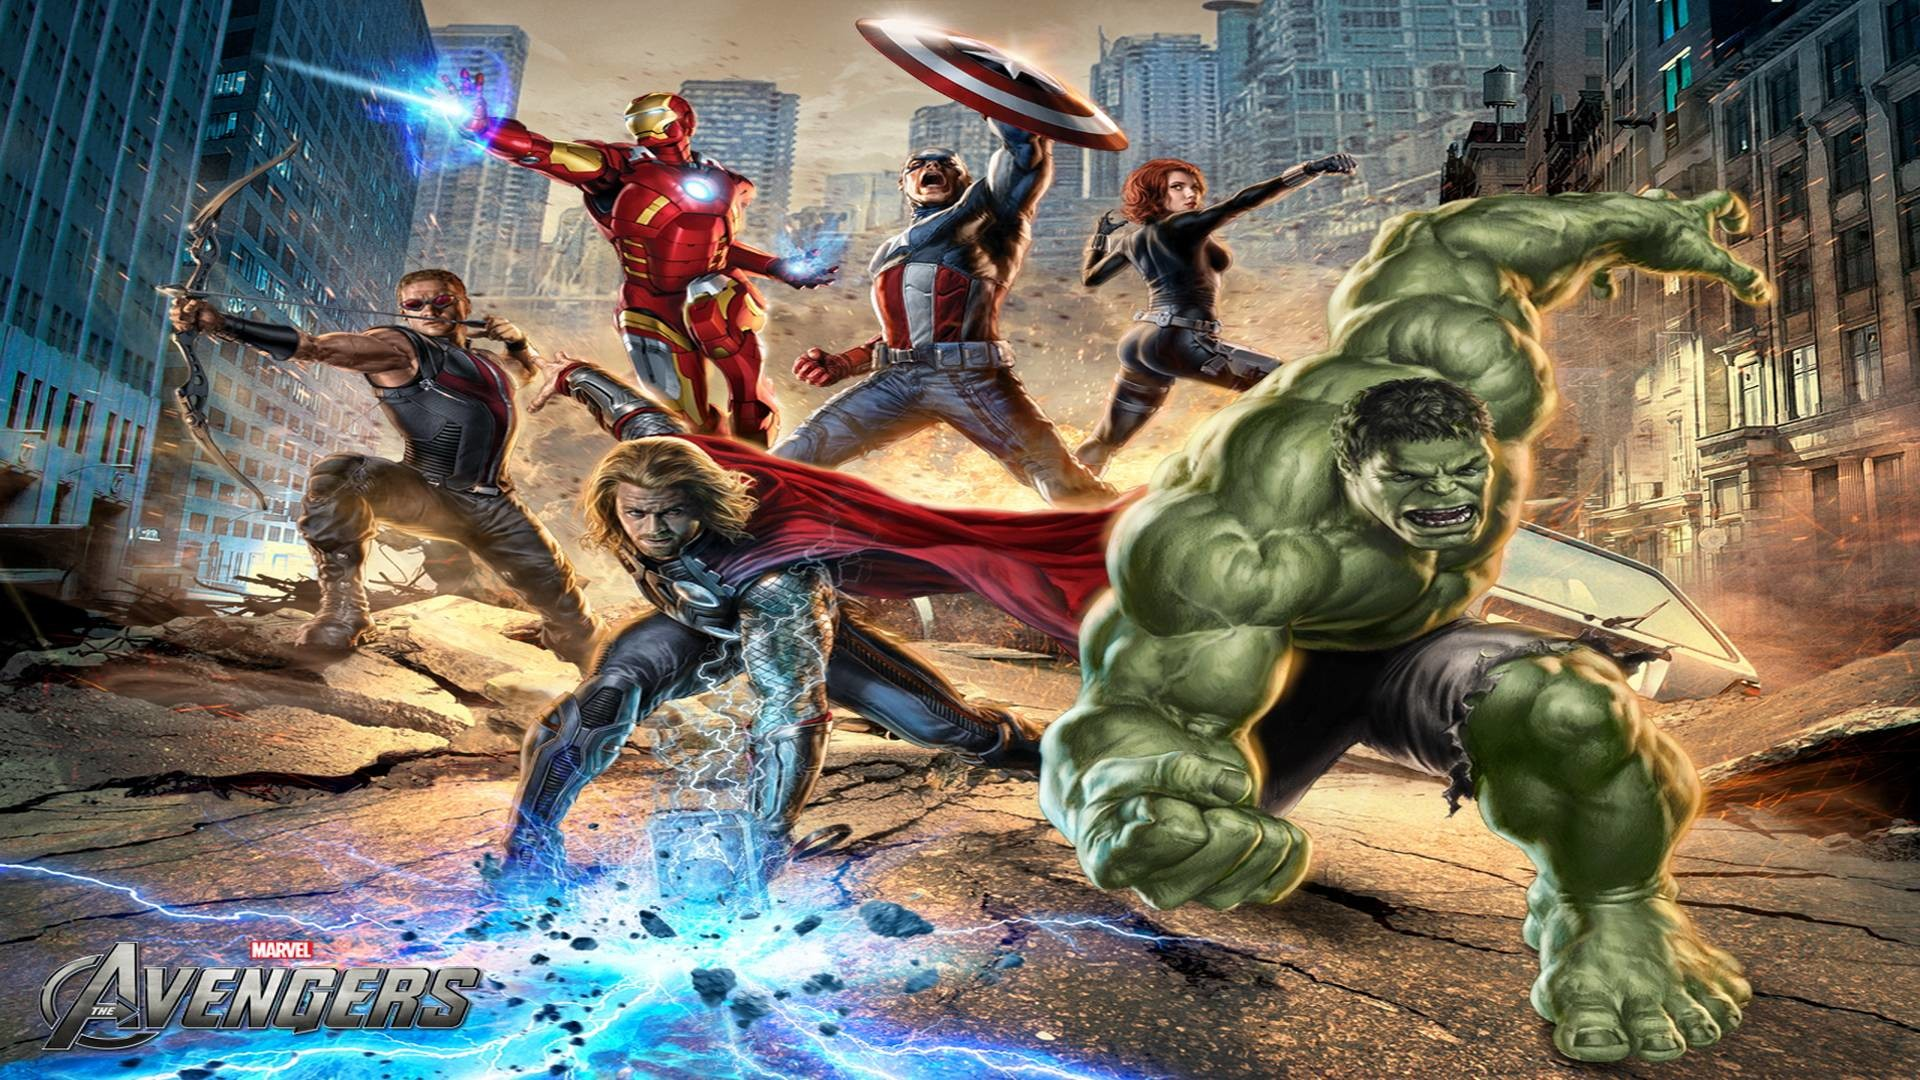 The Avengers Wallpapers For Desktop Movie Backgrounds